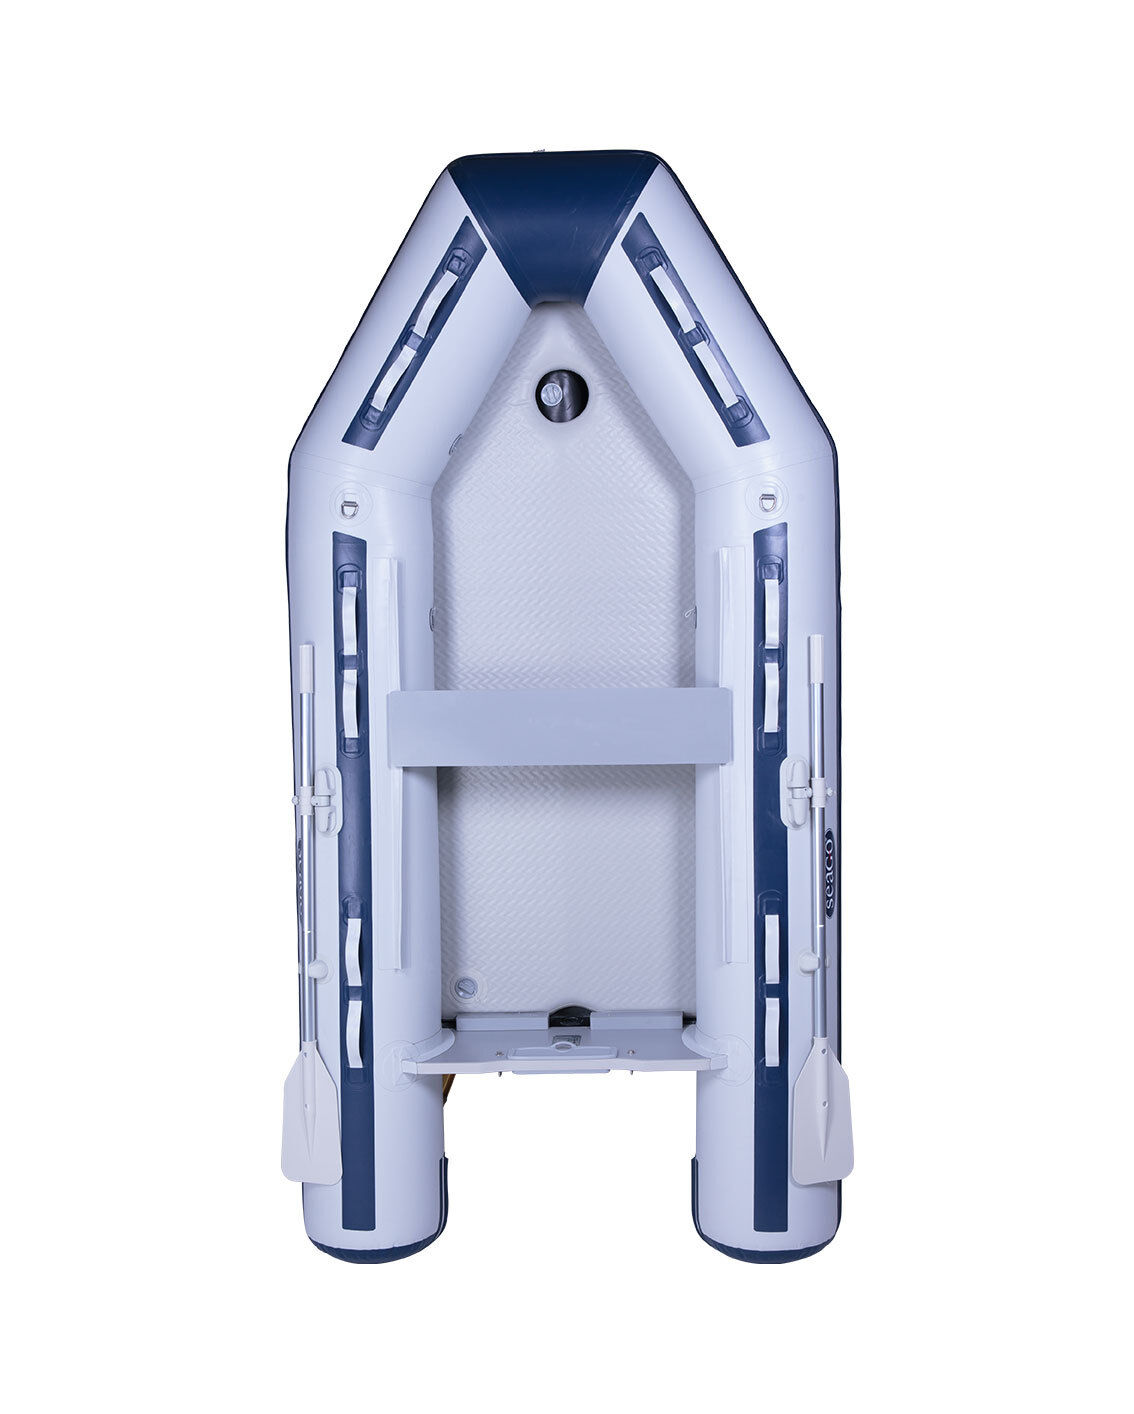 Seago Inflatable Dinghy tender Hypalon HY280